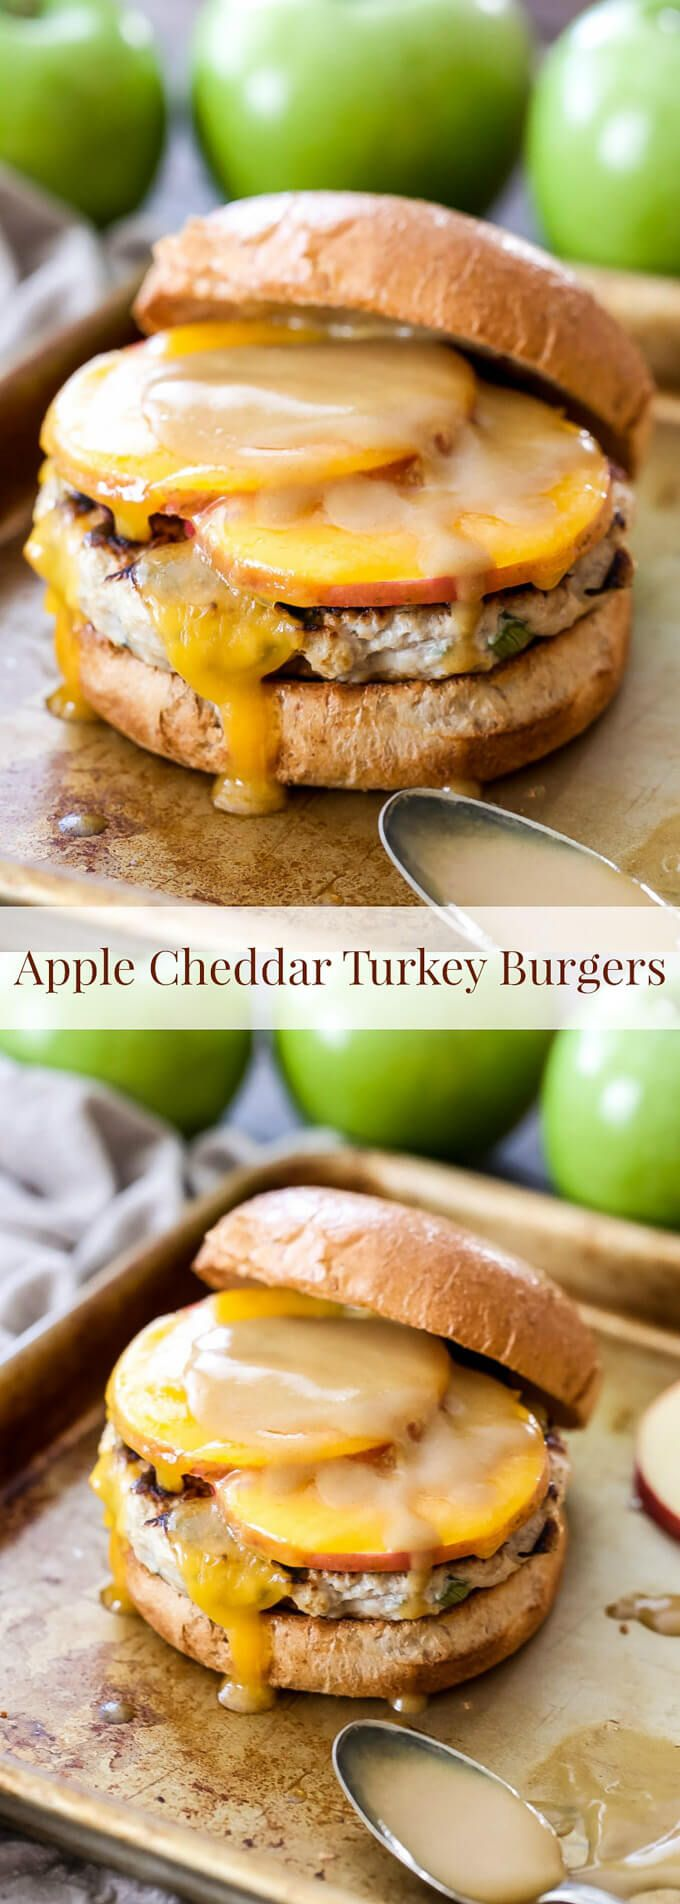 Say goodbye to dry, flavorless turkey burgers and hello to these juicy Apple Cheddar Turkey Burgers! Sliced apples, cheddar cheese and maple dijon mustard are the perfect sweet and savory toppings!